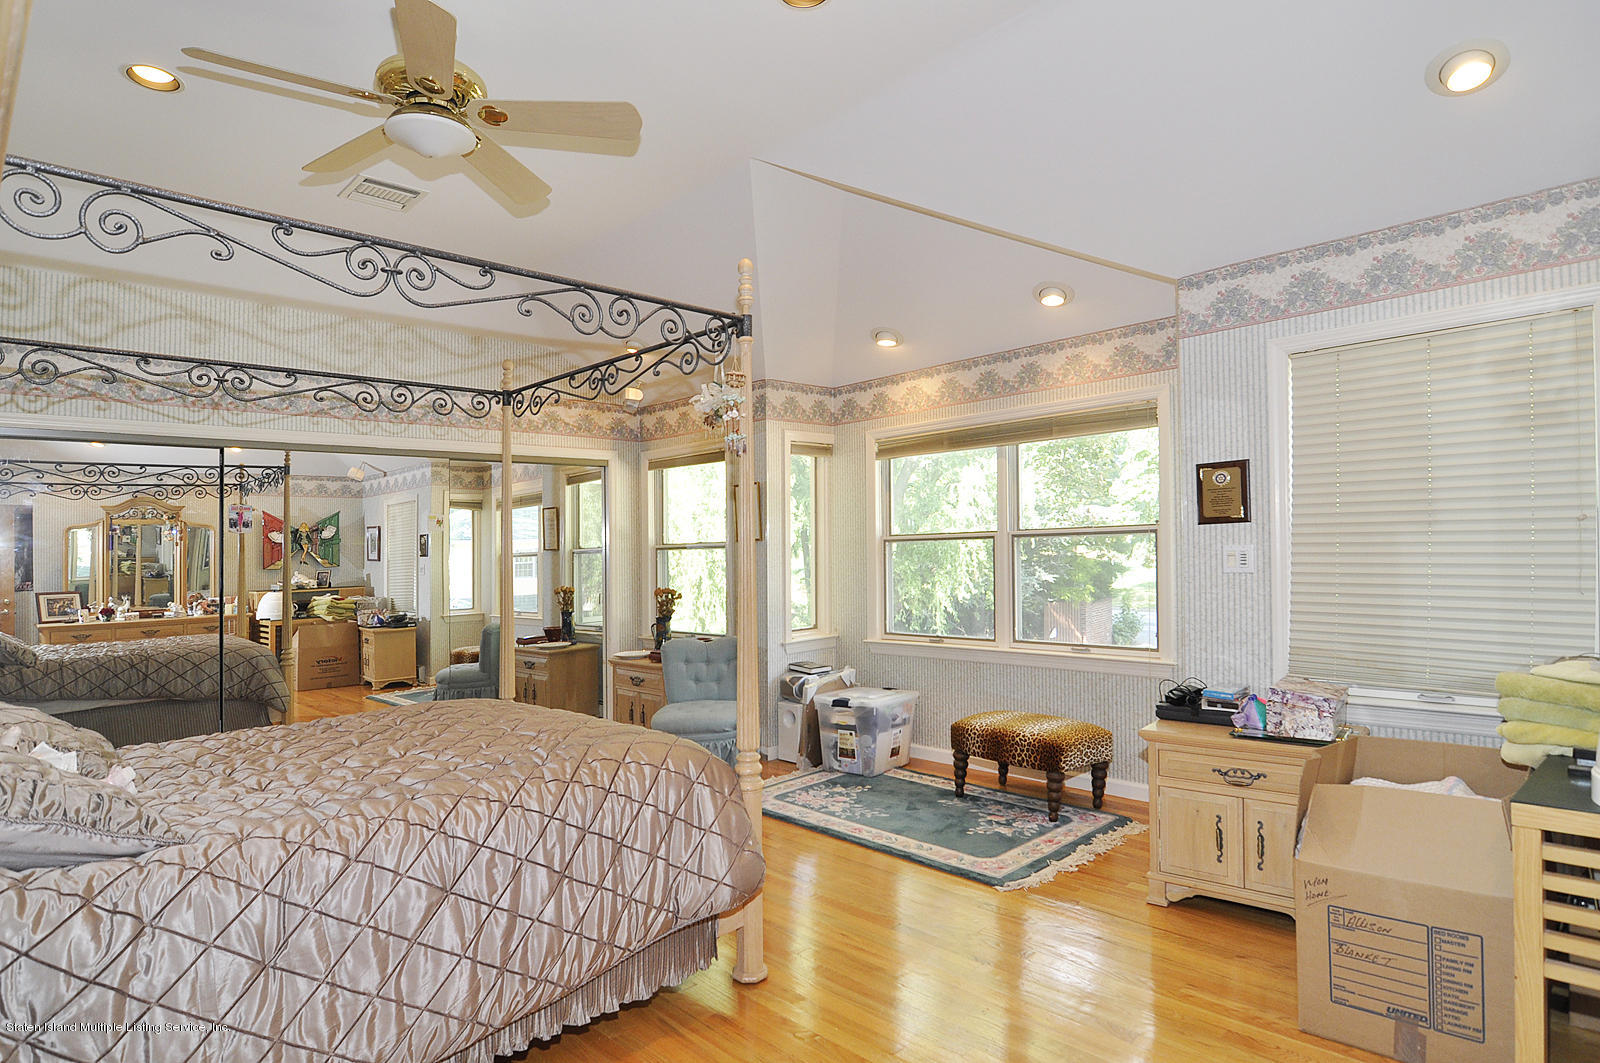 Single Family - Detached 738 Todt Hill Road  Staten Island, NY 10301, MLS-1127956-13